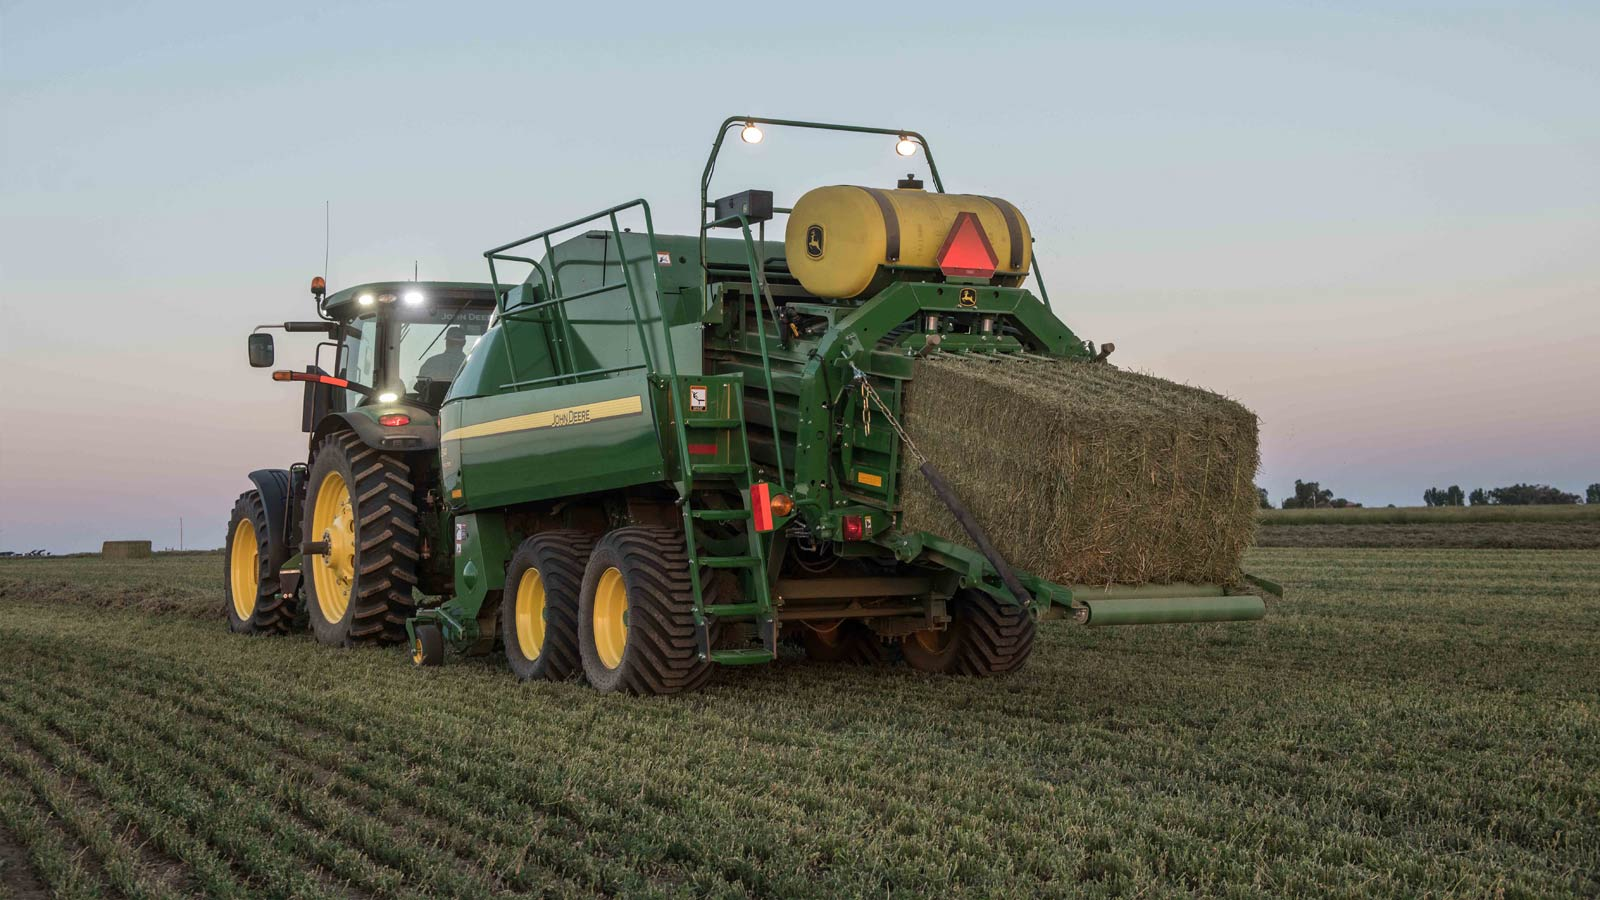 John Deere tractor with a large square baler attached